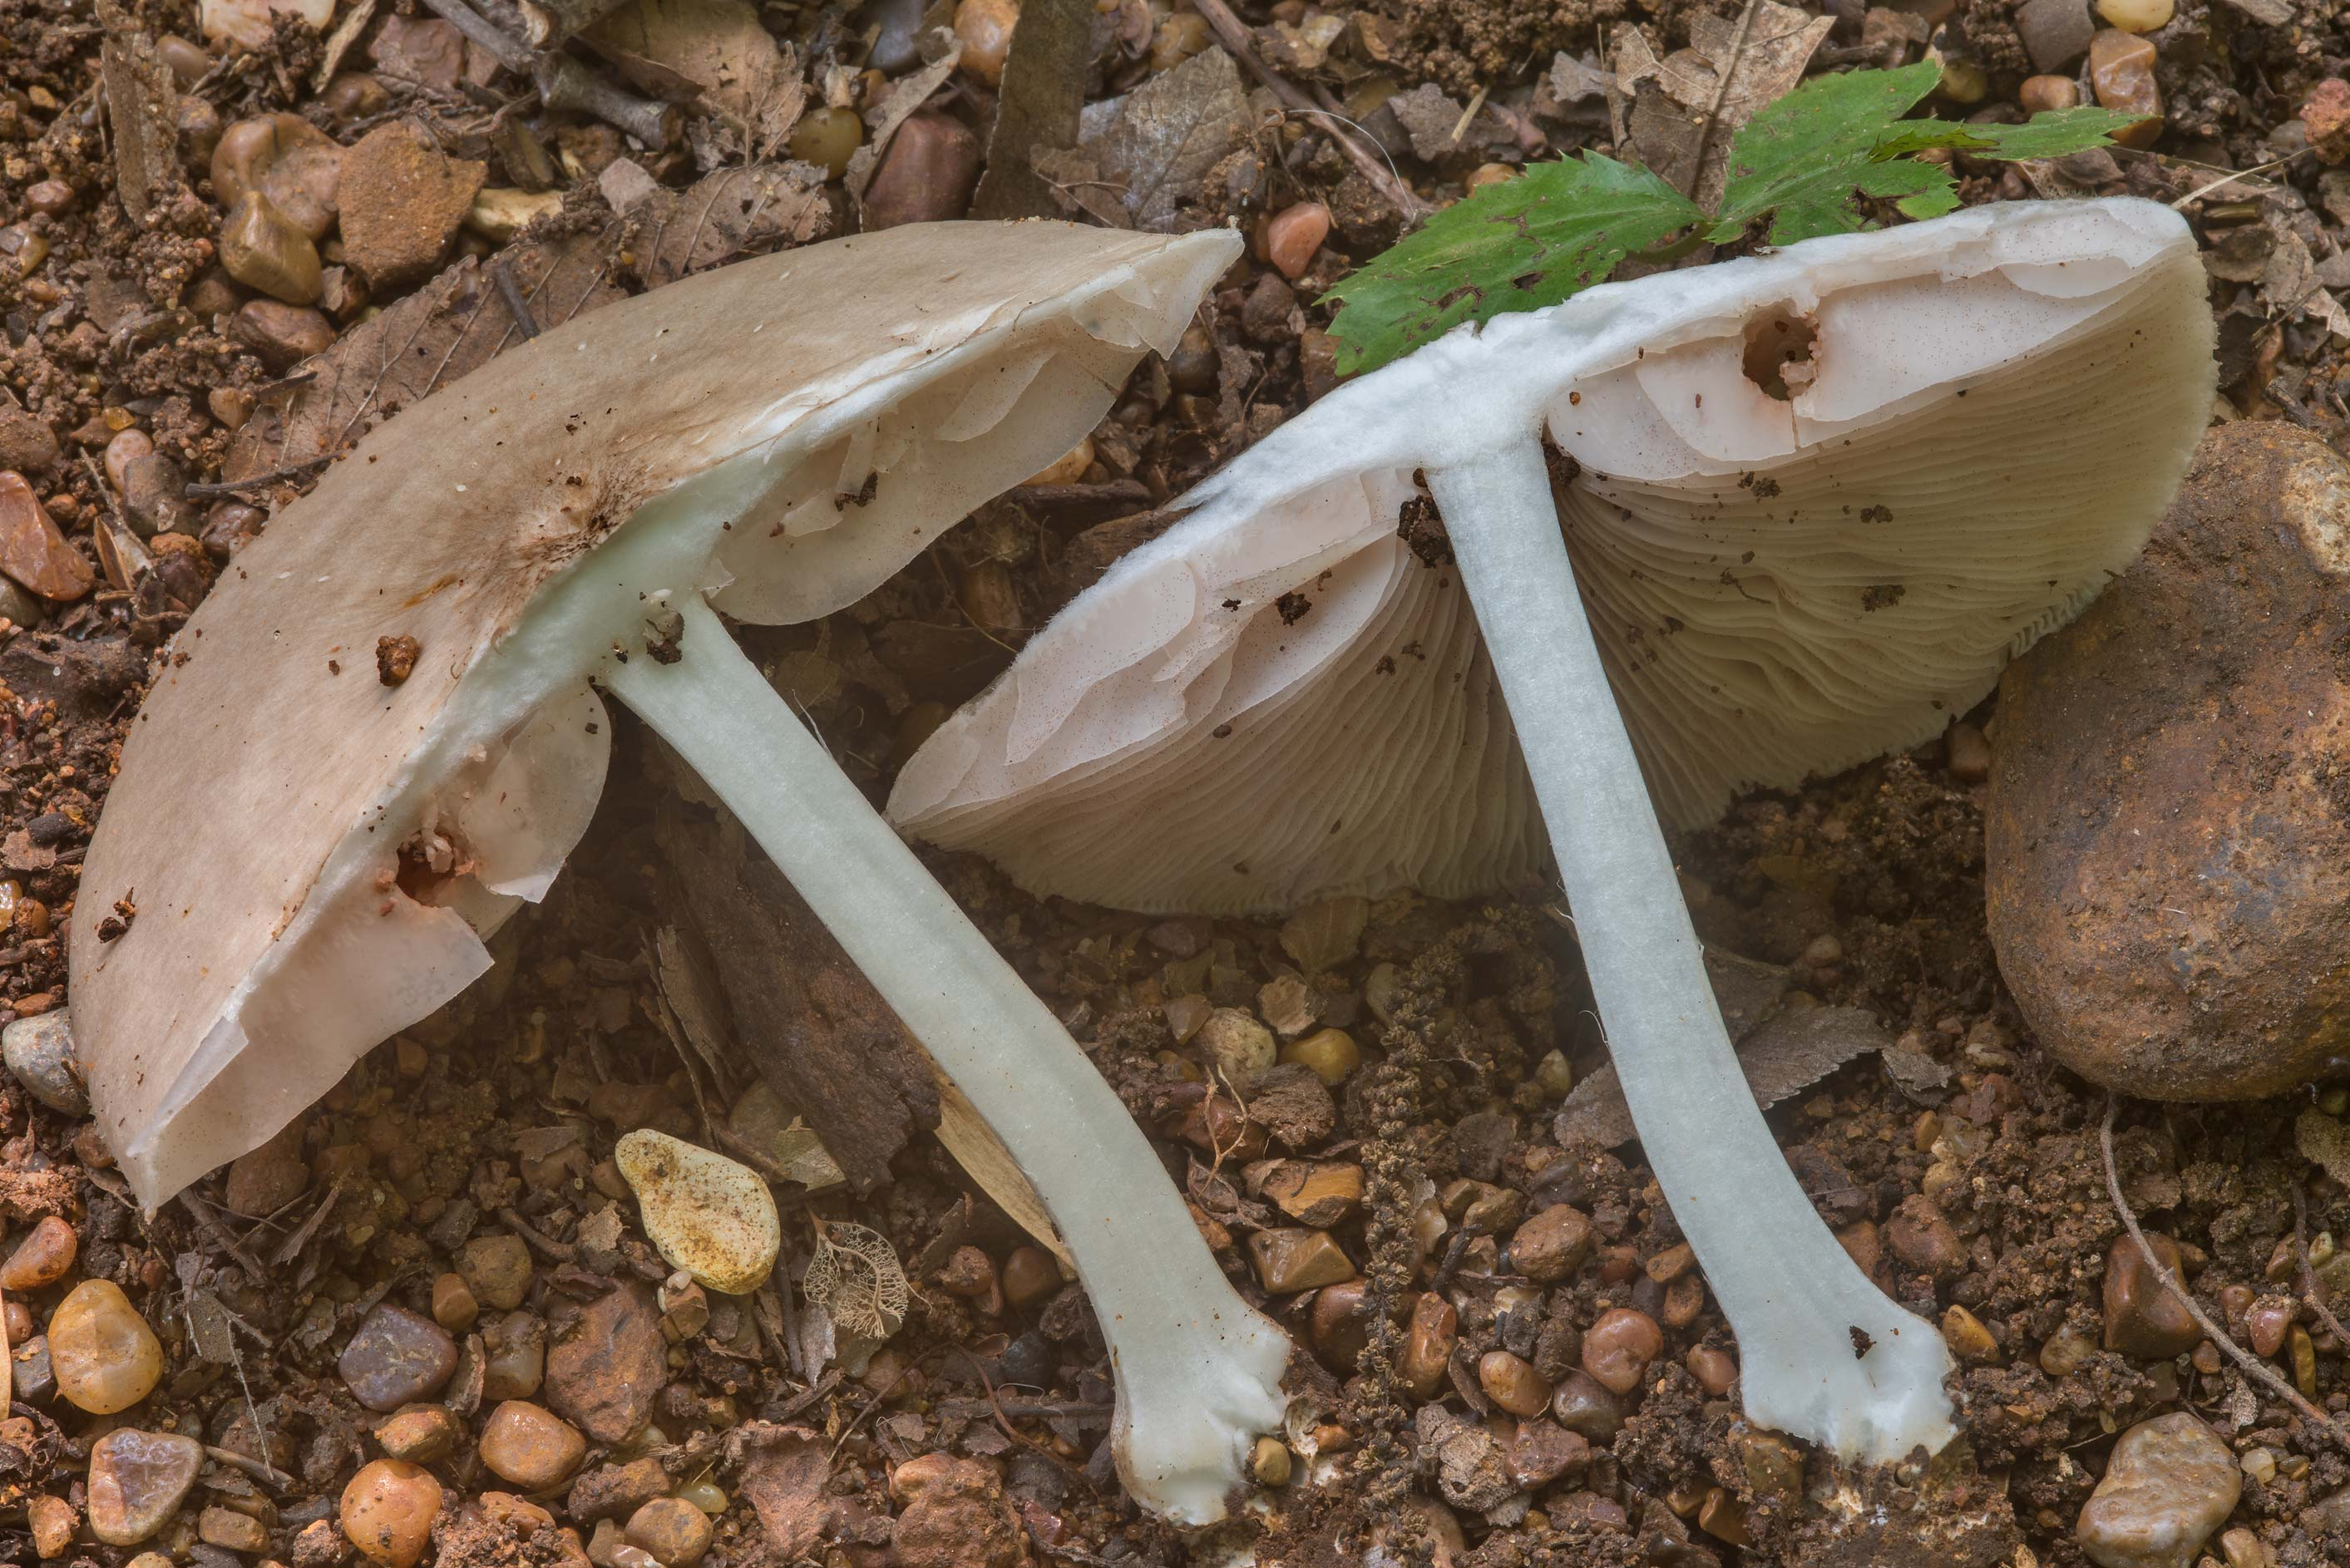 Dissected Pluteus americanus mushroom on a sandy...Creek Park. College Station, Texas